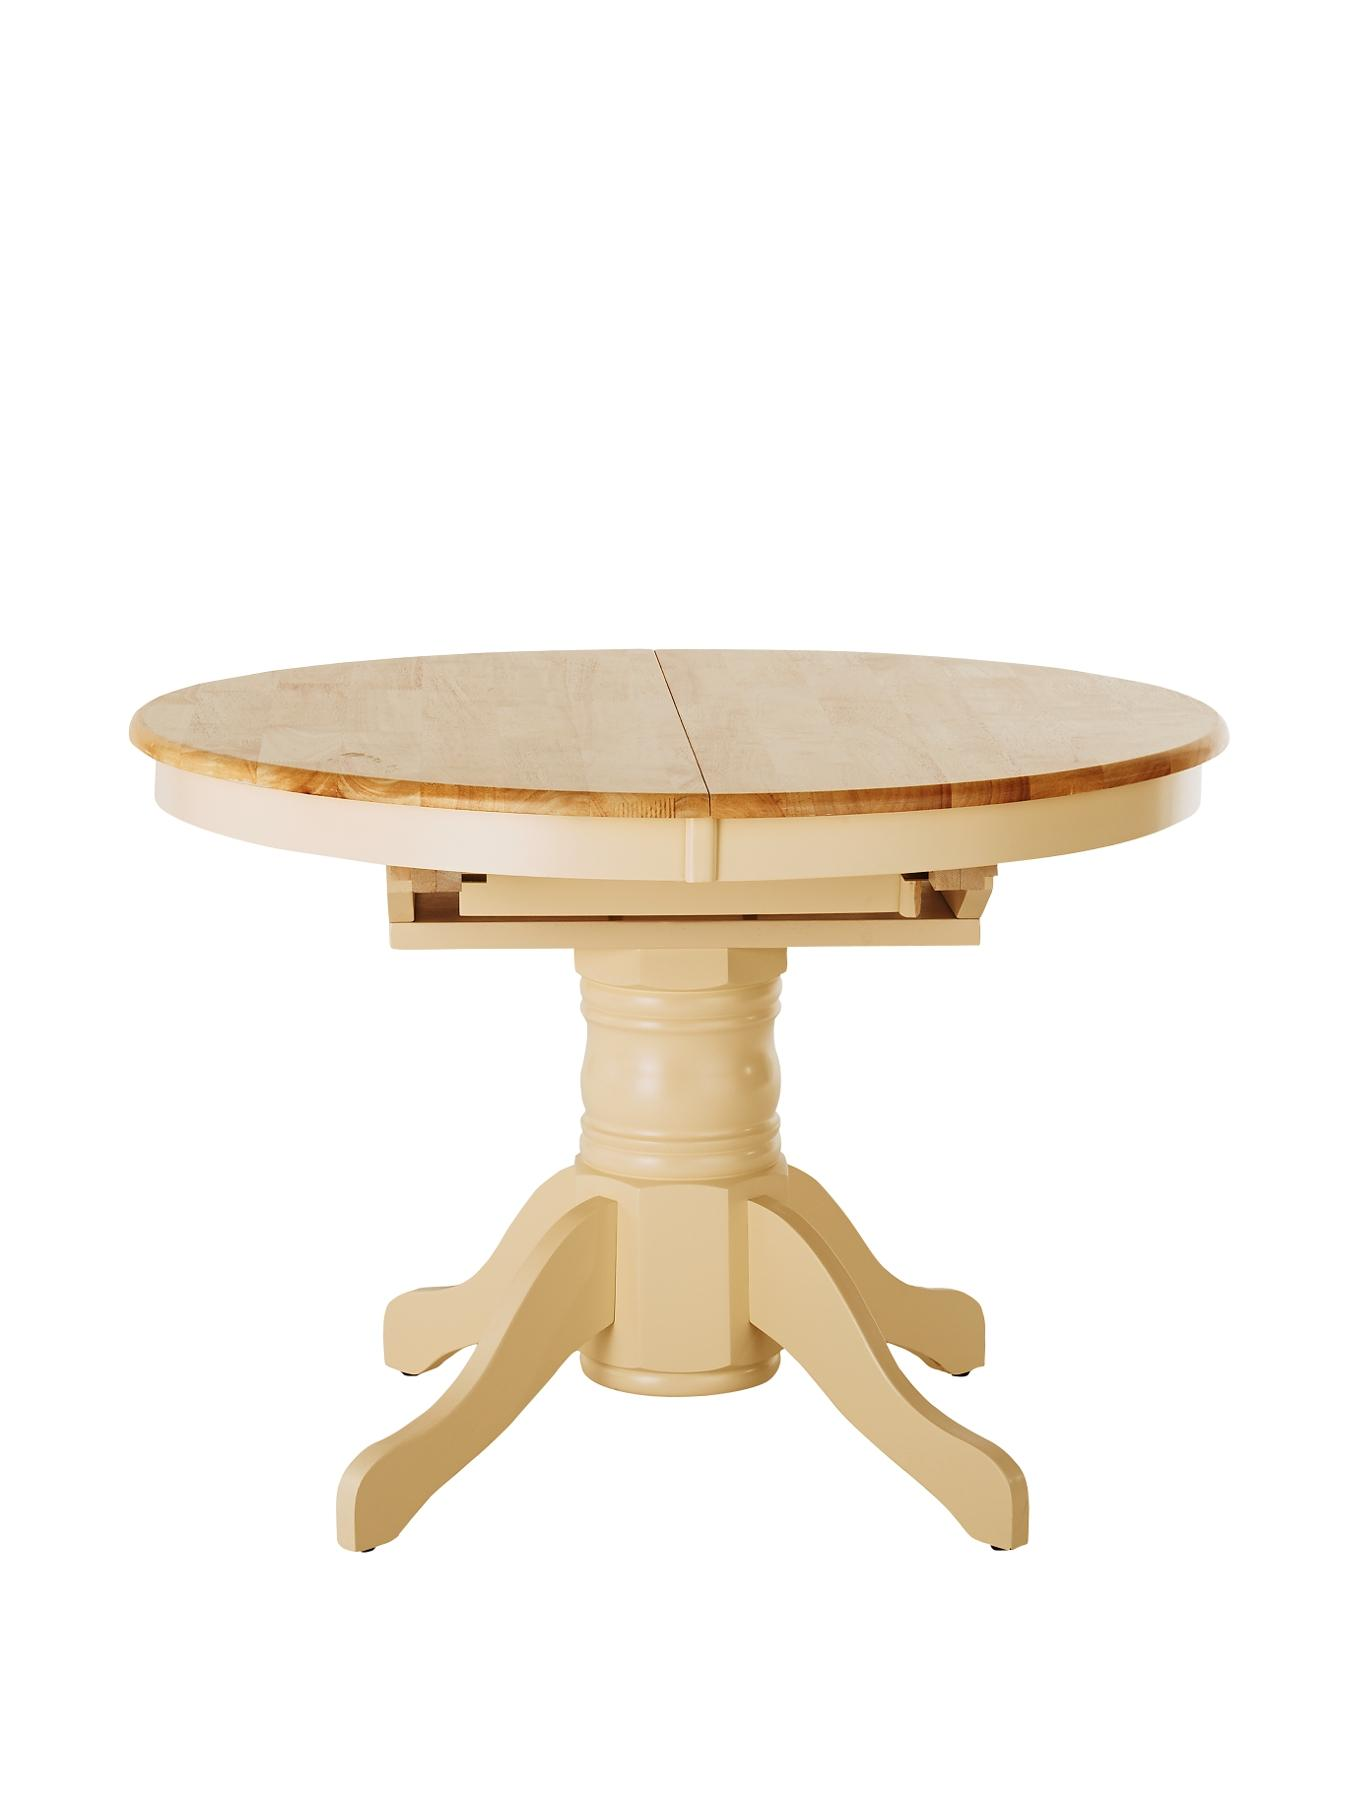 Kildare Extending Round Dining Table : A373PSP271023Q7U3 from research.priceinspector.co.uk size 1354 x 1800 jpeg 51kB